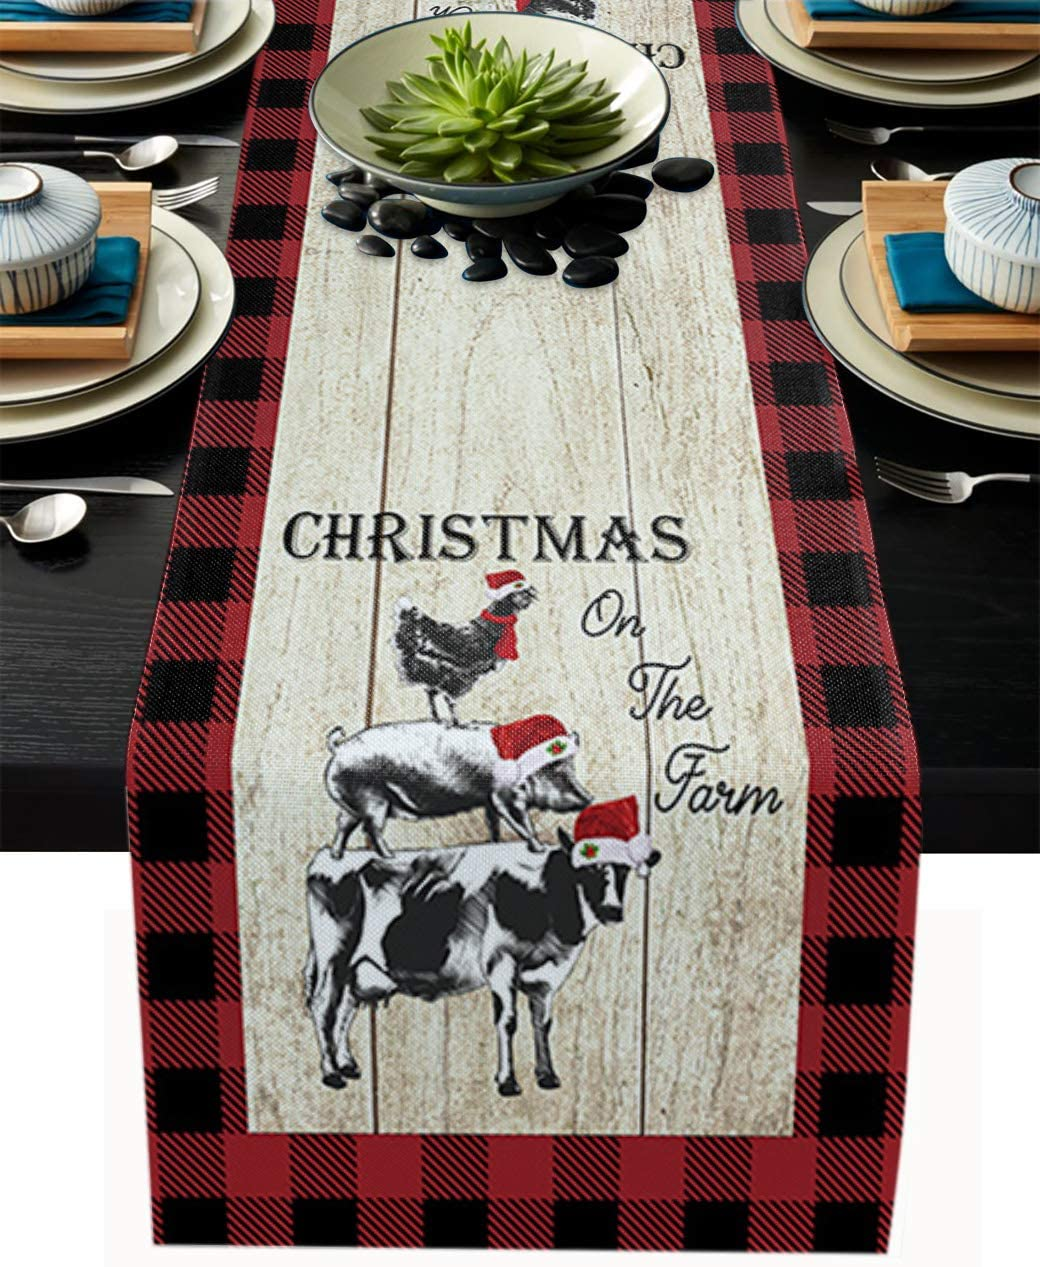 Christmas Farm Animal Table Runner for Farmhouse Holiday Parties, Burlap Table Runner Dresser Scarves Cow Pig Chicken Rustic Wood Planks Buffalo Check Plaid Dining Table Decor, 13 x 90 Inch